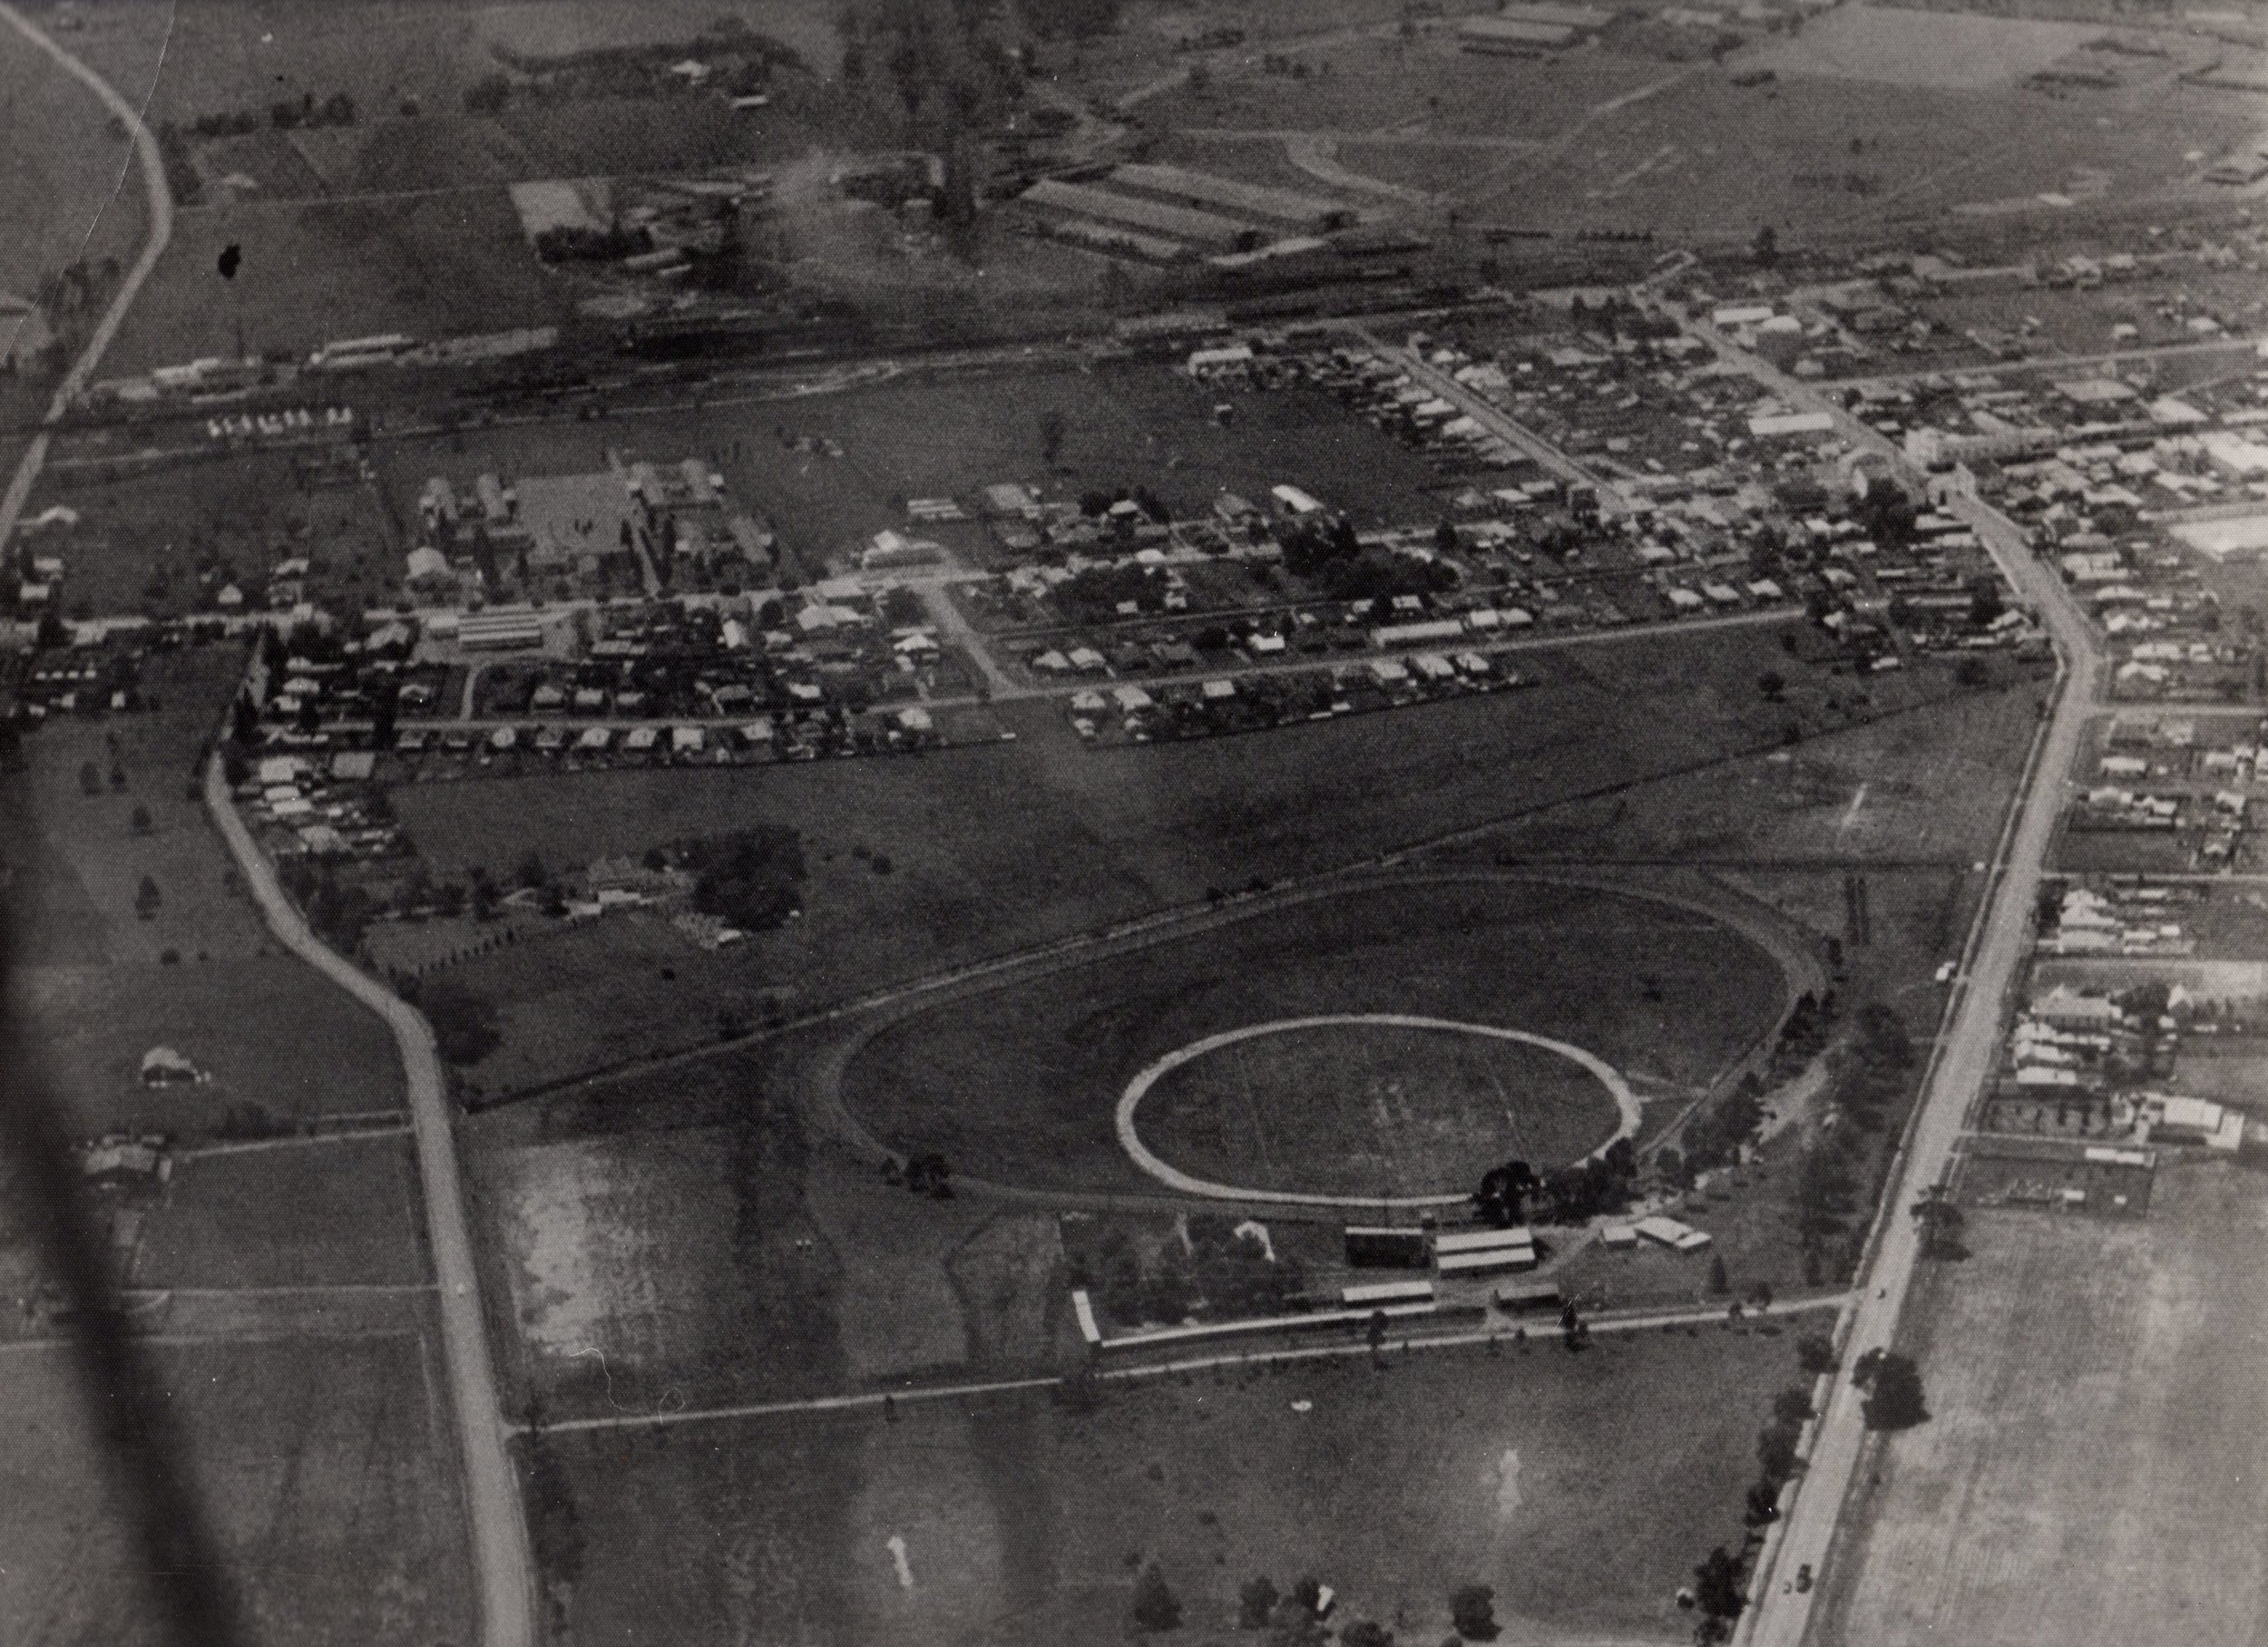 Penrith Paceway aerial photo 1964.  Note the vacant land -  how Penrith has changed